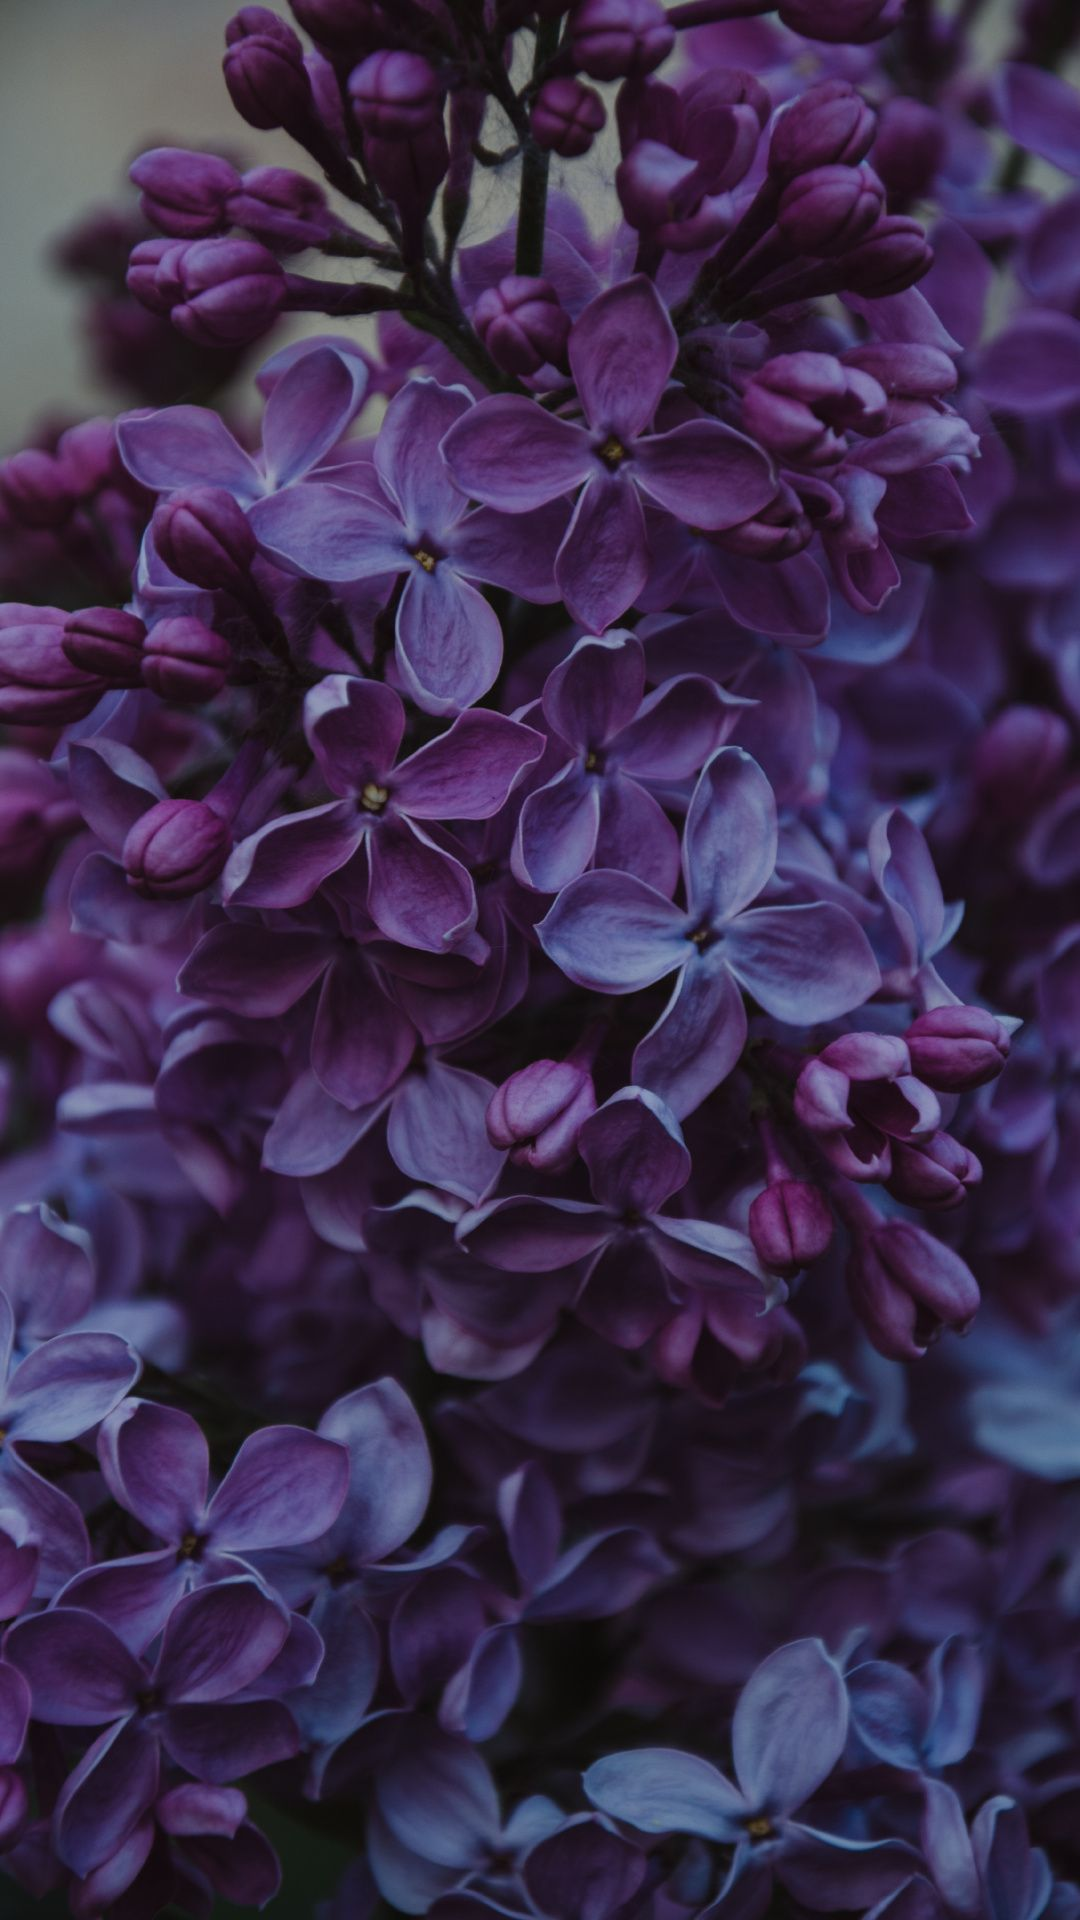 Wallpapers spring, lilac, plant, flowering plant, flower